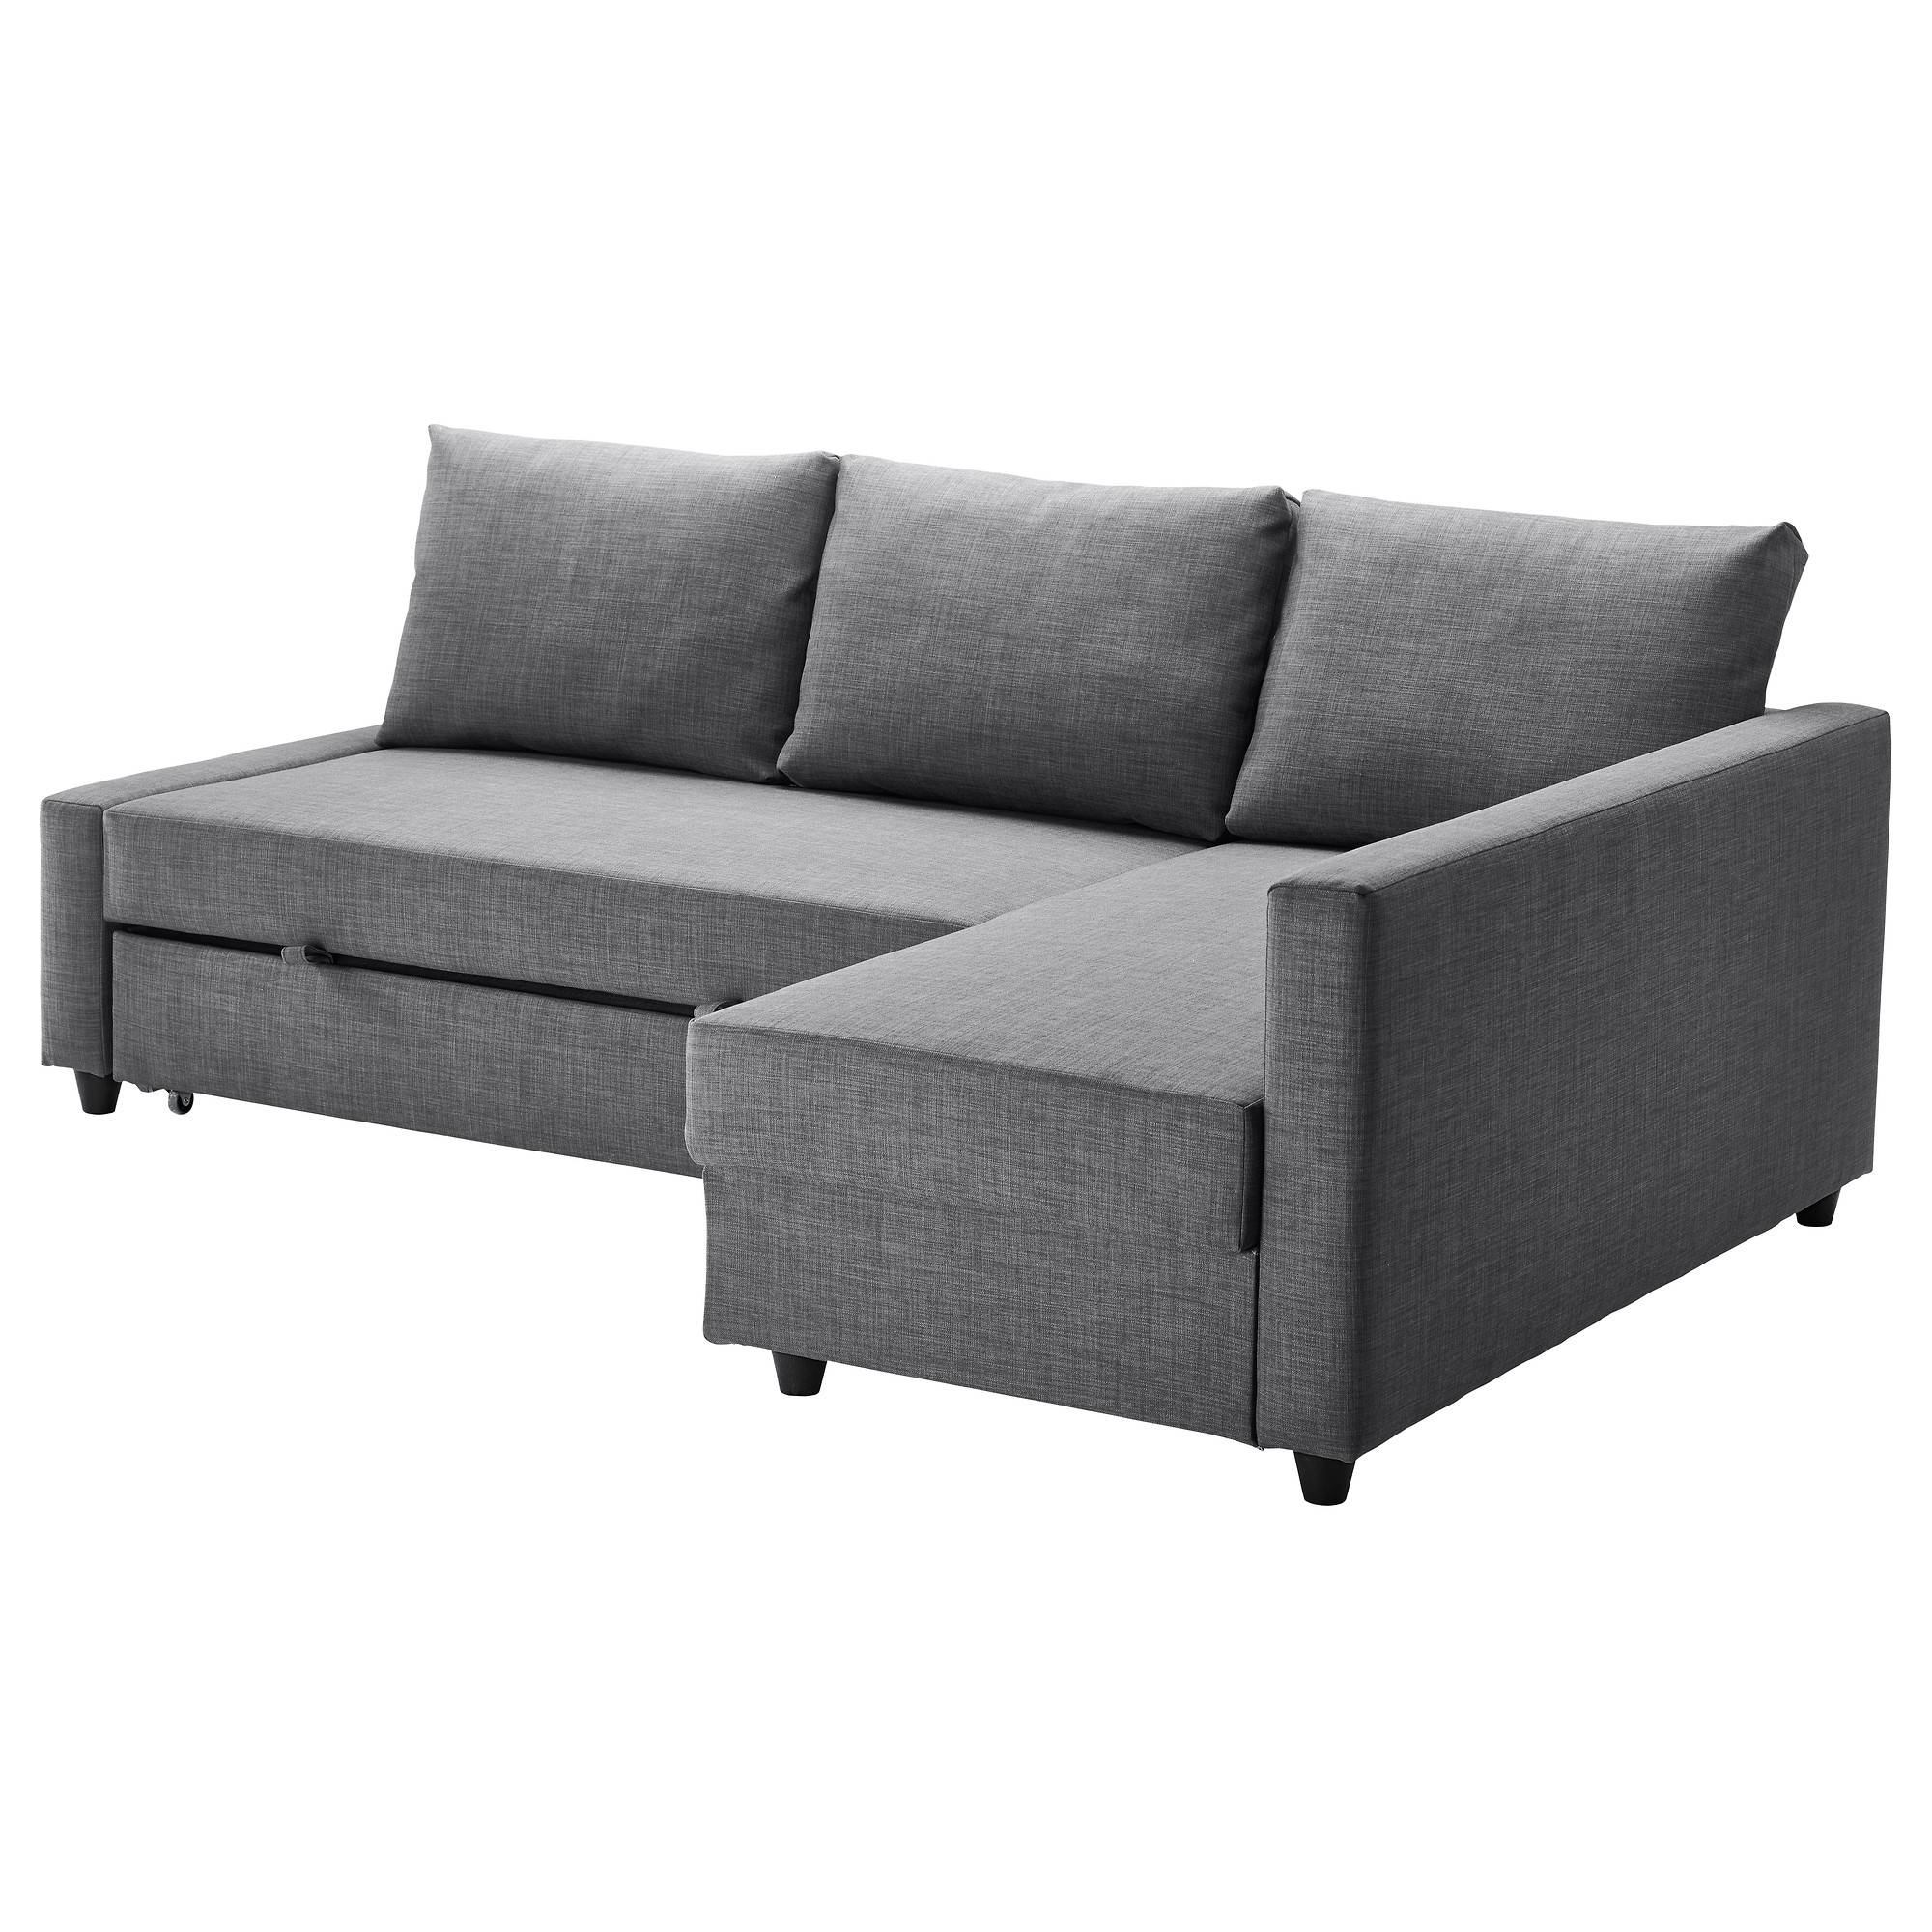 Compact sofa sleeper friheten sleeper sectional,3 seat w/storage - skiftebo dark gray - ikea iduvitz